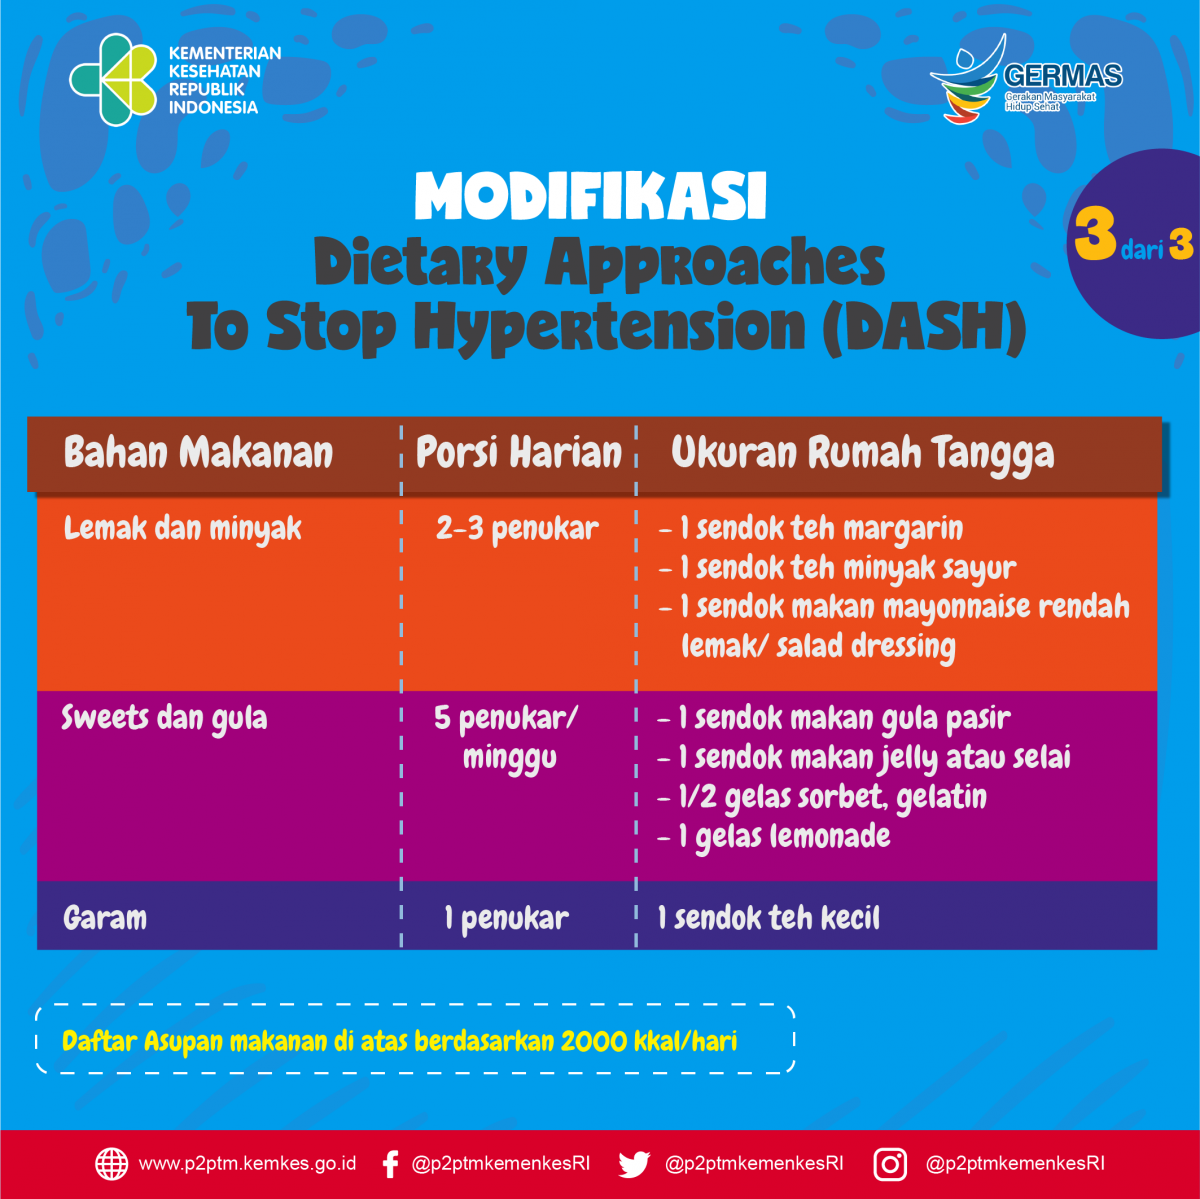 Tabel Modifikasi Dietary Approaches To Stop Hypertension (DASH) - bagian 3